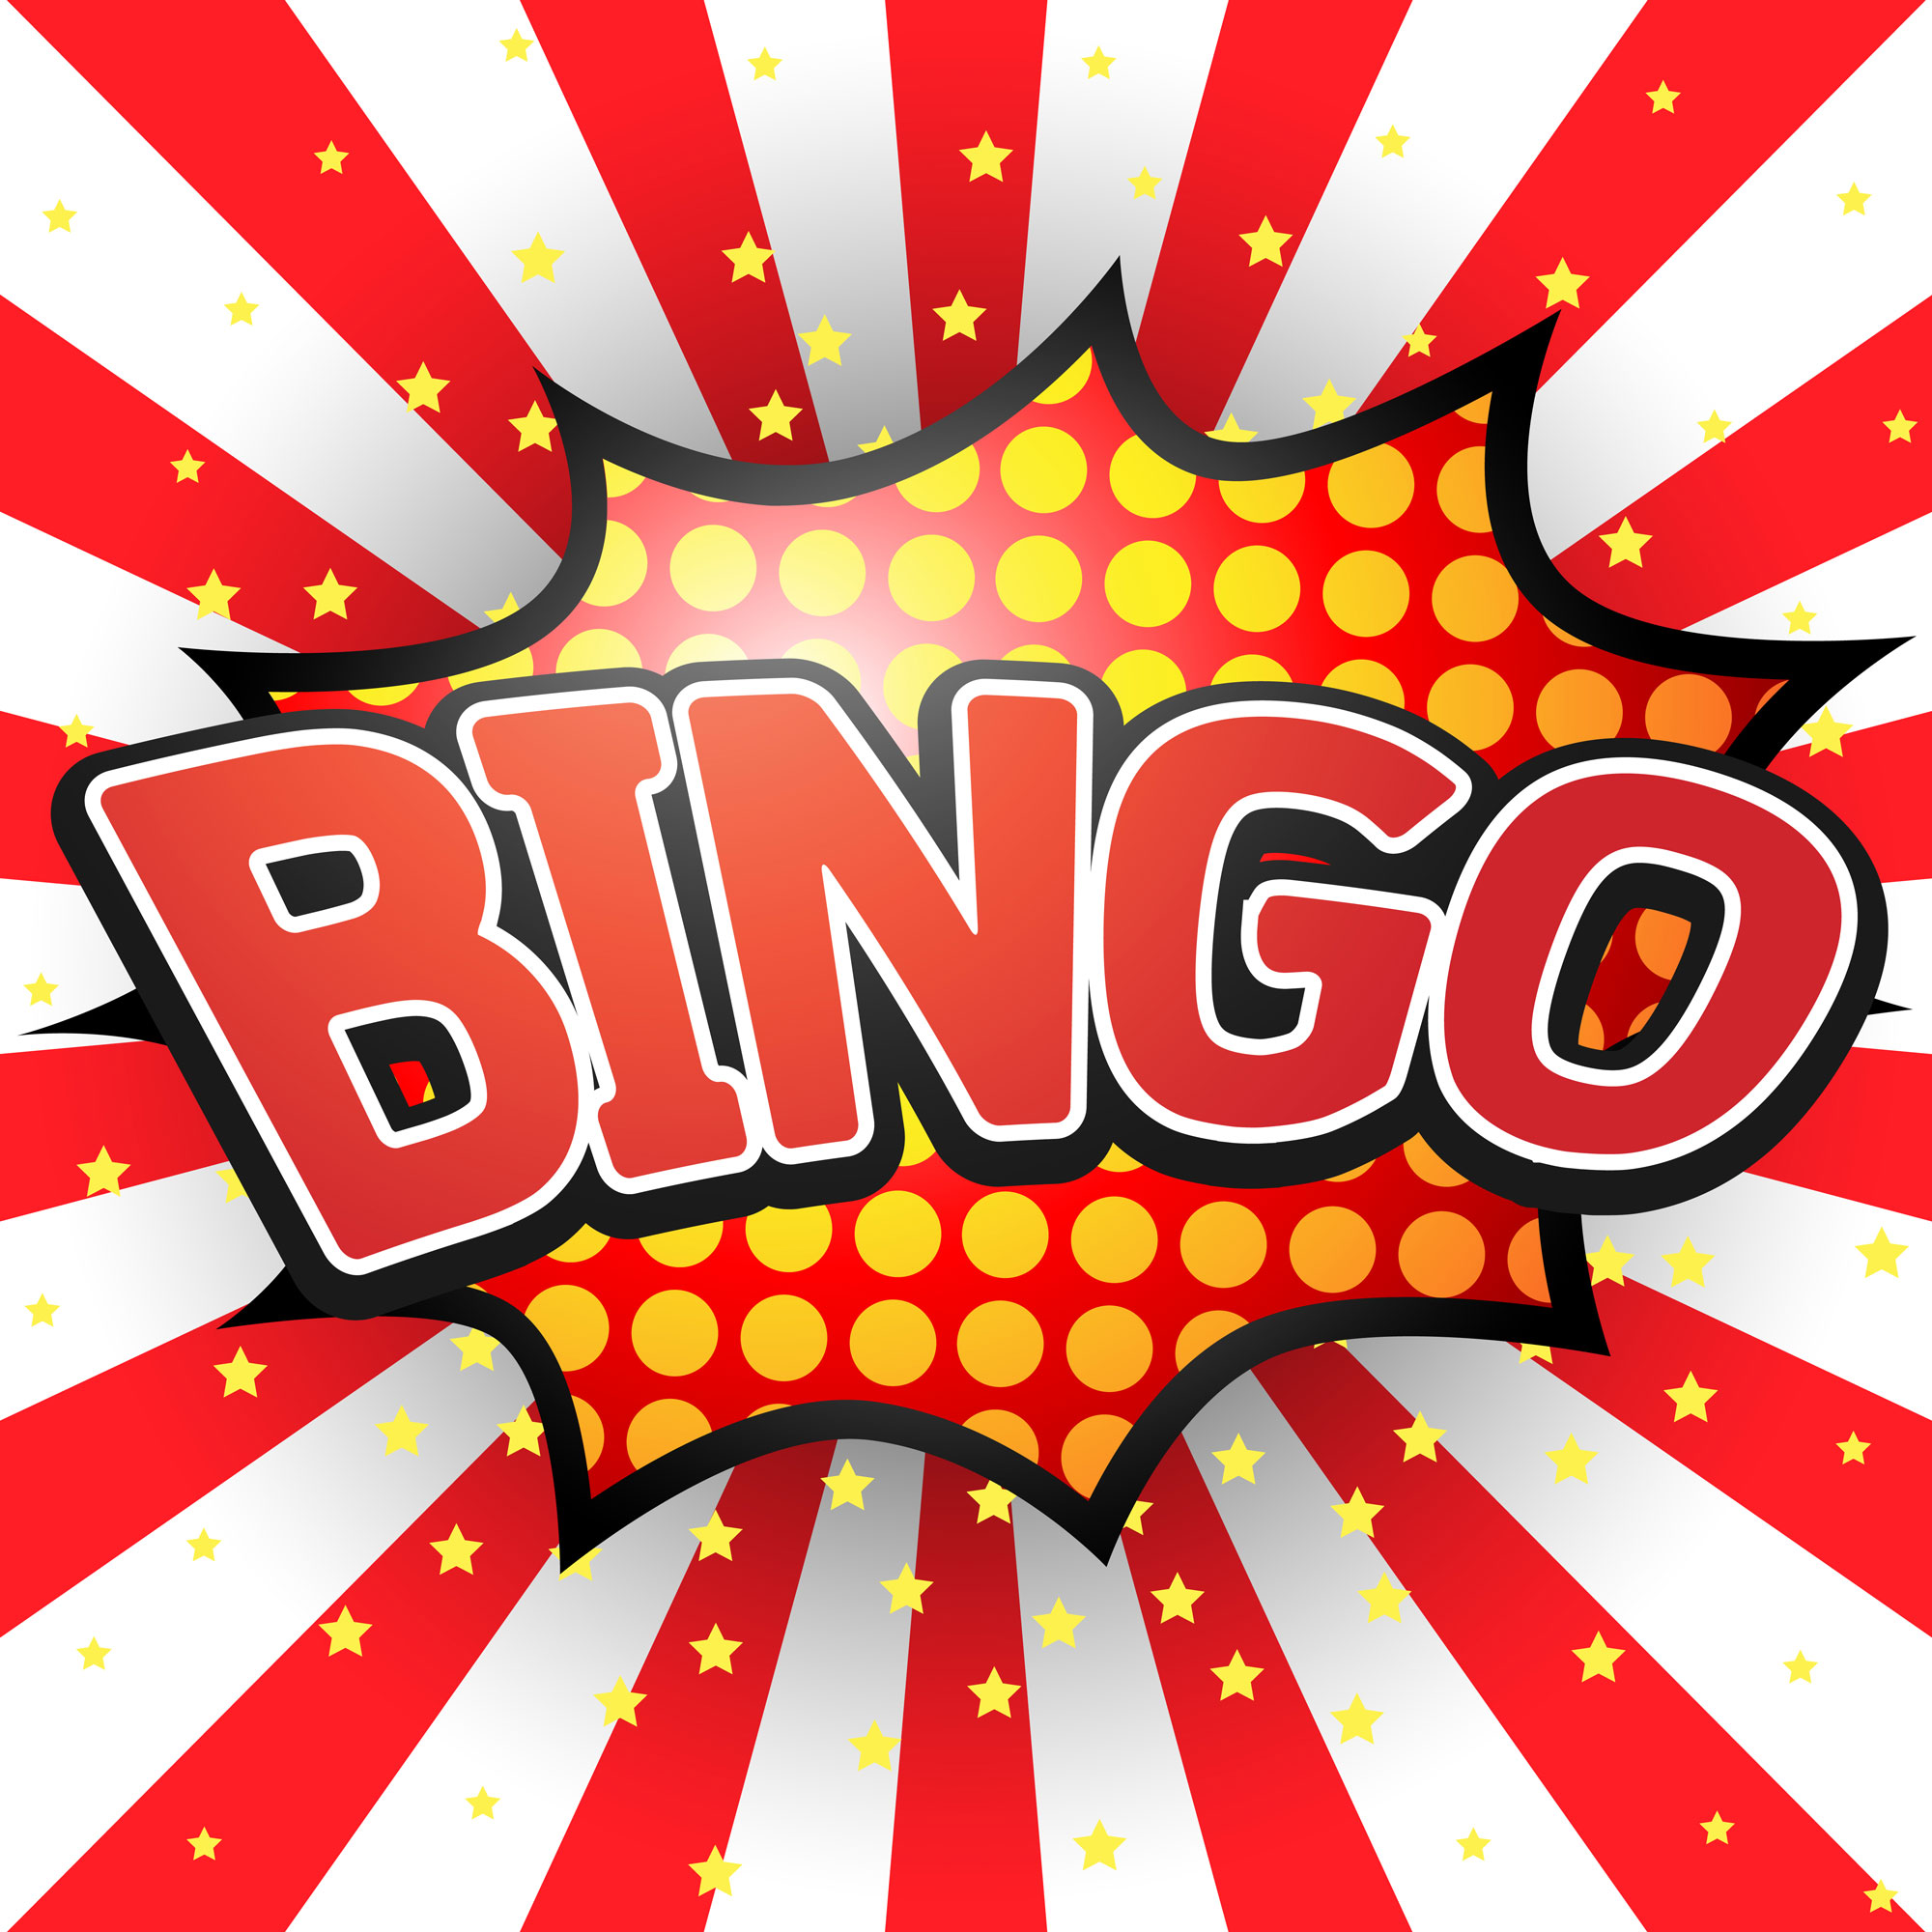 HQ Bingo Wallpapers | File 451.04Kb